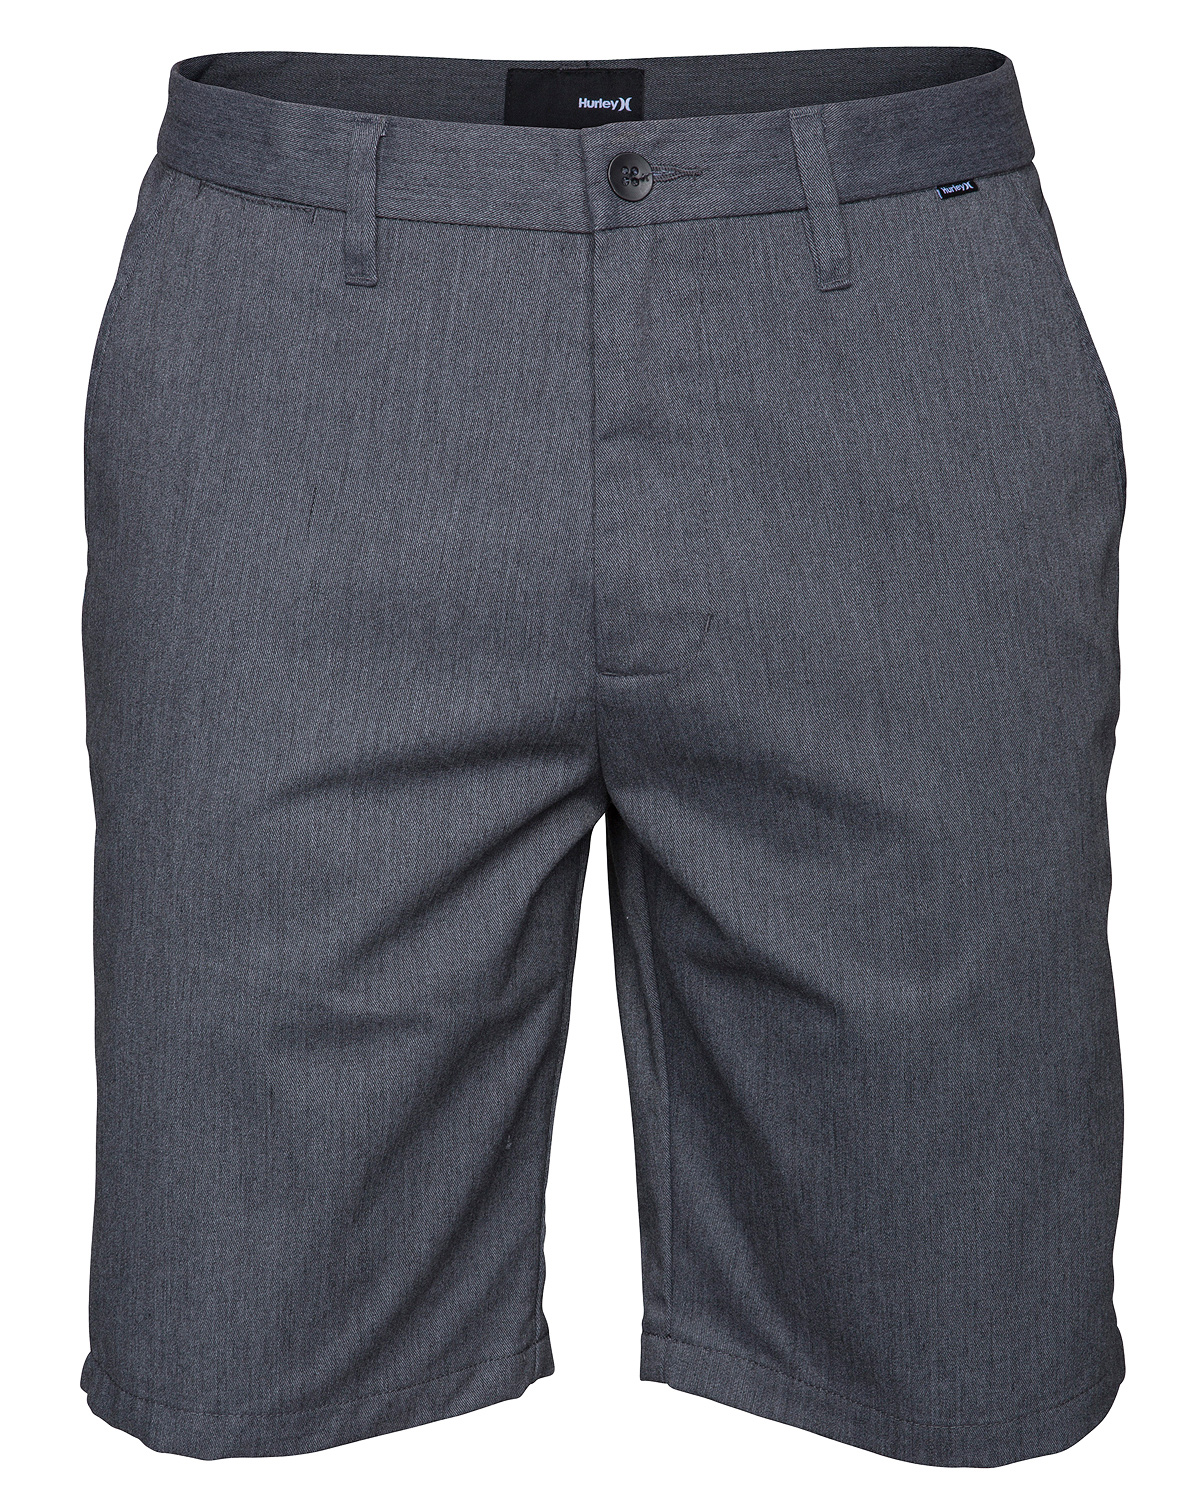 "Surf Key Features of the Hurley One & Only Shorts: 21 1/2"" trouser fit 60% cotton/40% polyester twill Double welt back pockets with single engineered pocket flap Coin pocket Metal button closure at waistband and back pockets Signature colorbar button at back pocket - $28.95"